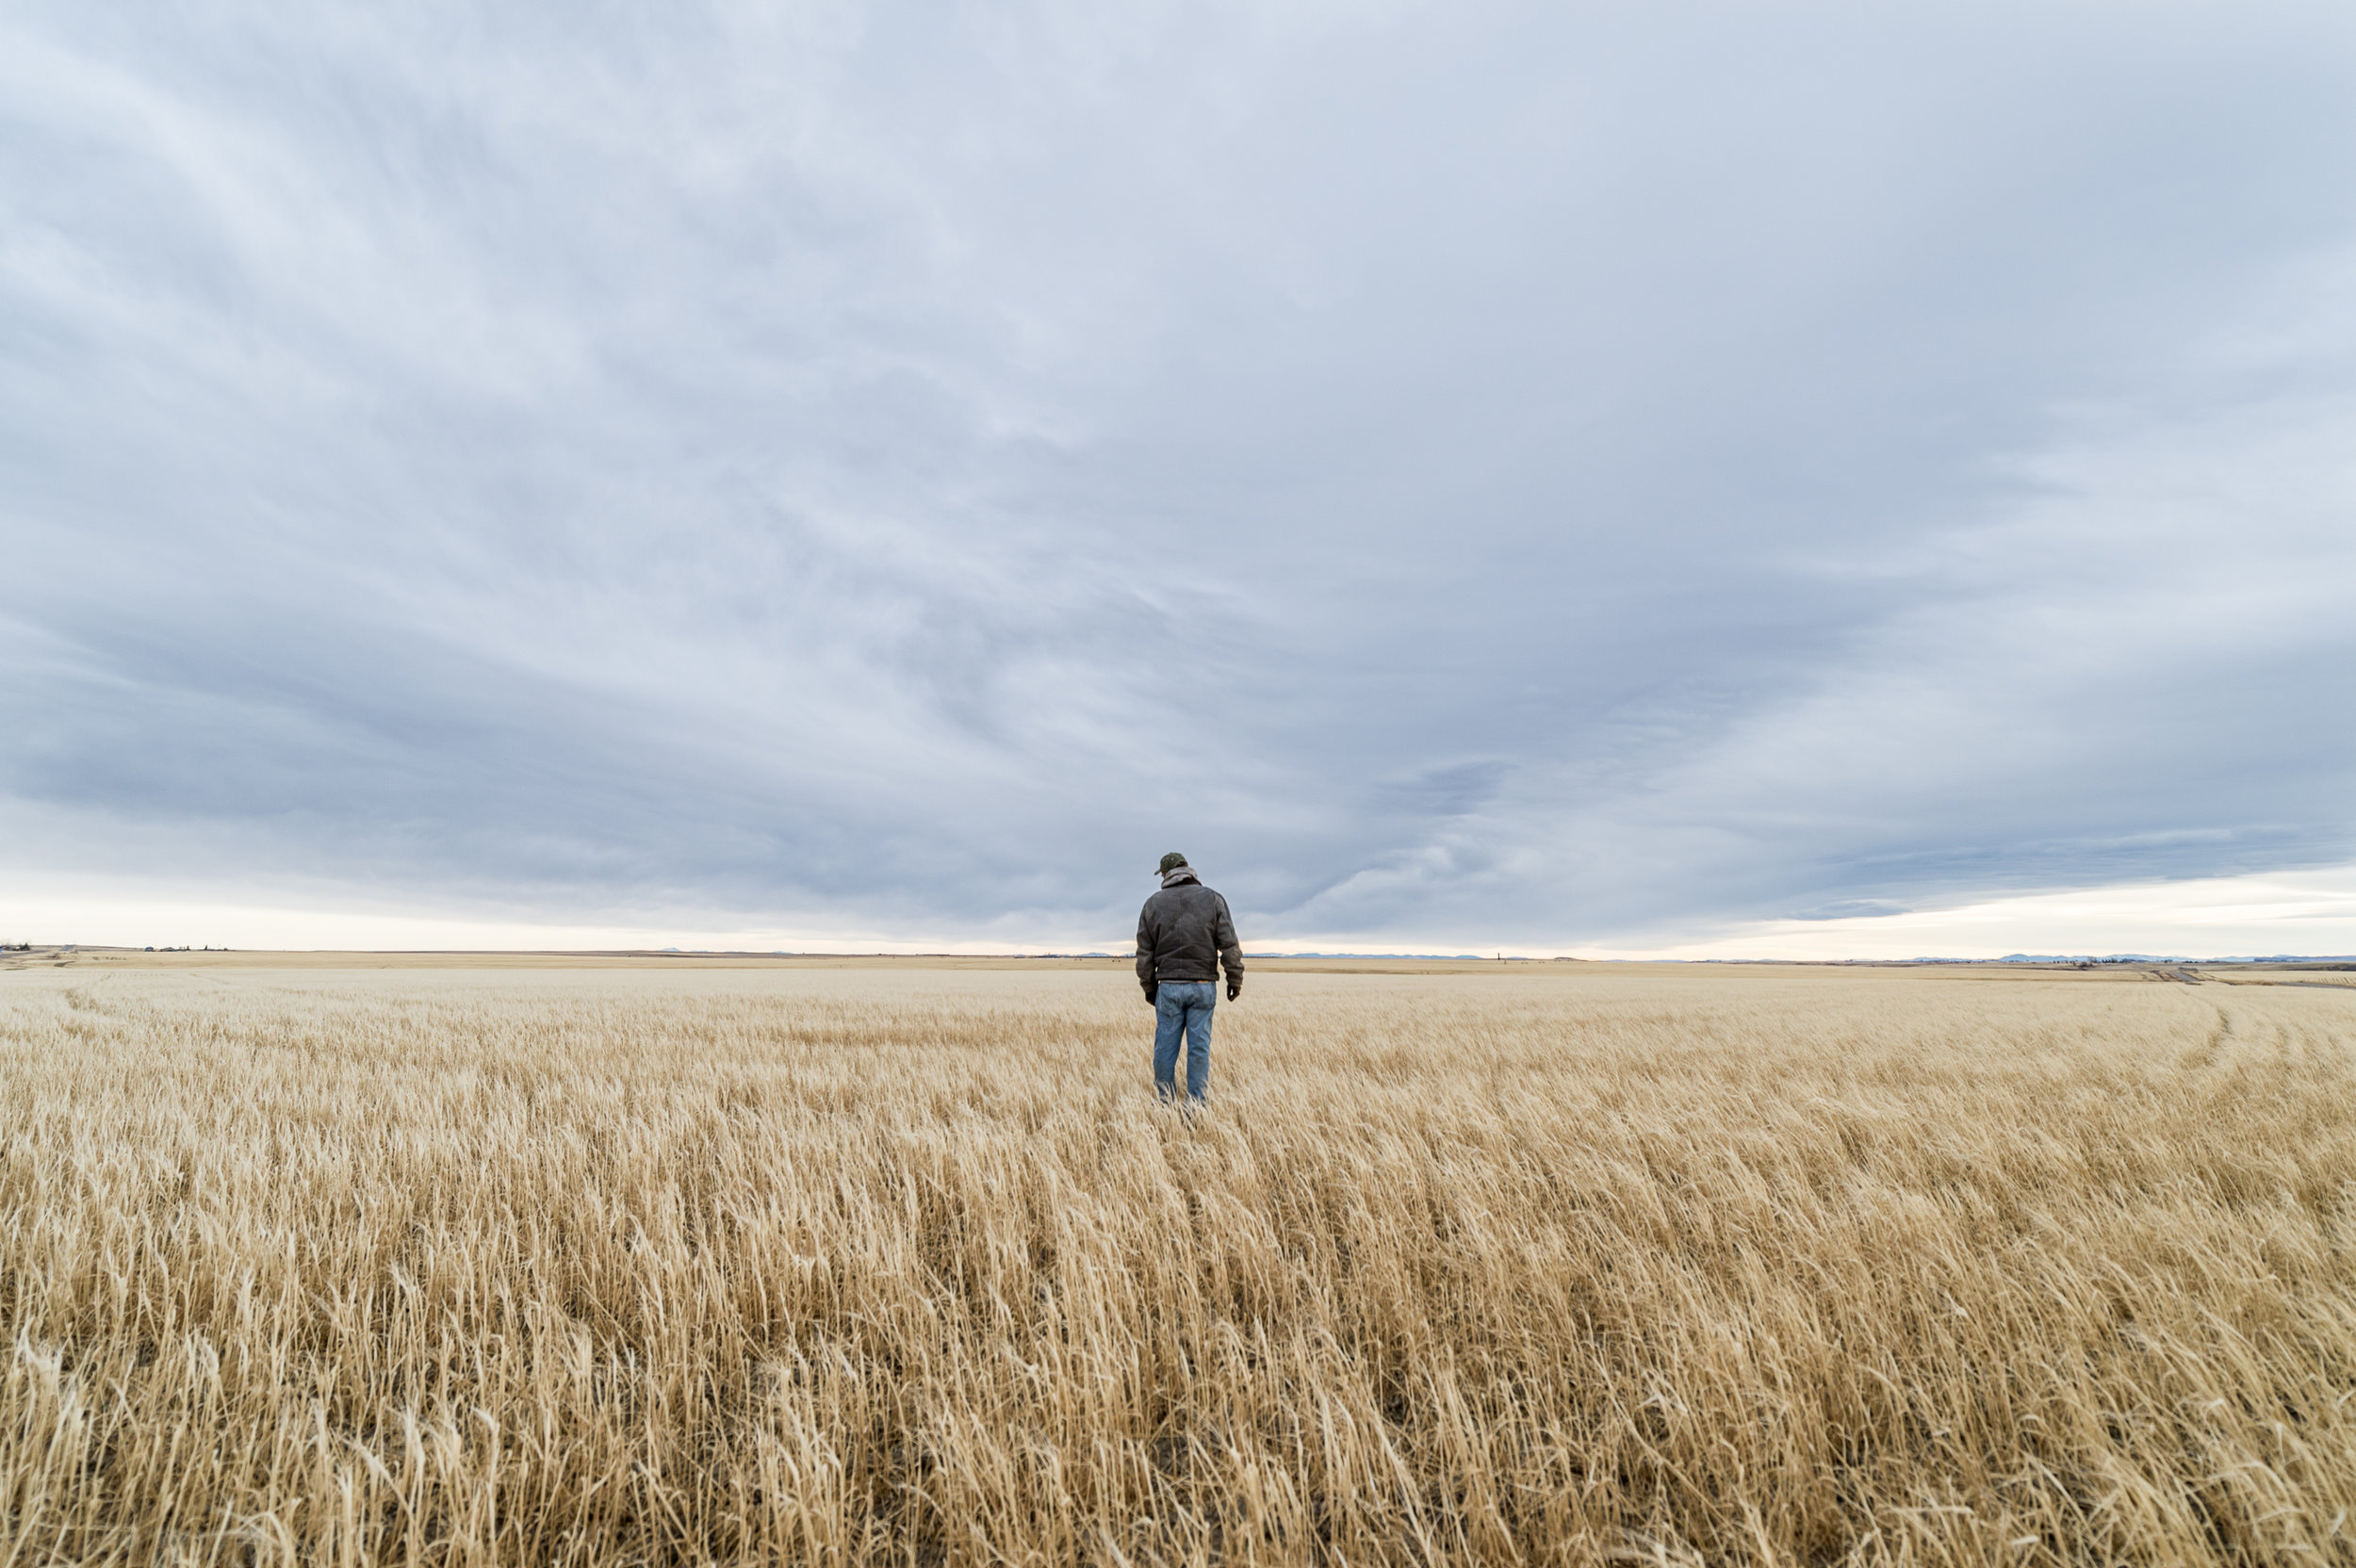 A barley farmer looks over his ravaged crop in Central Montana. ©Tony Bynum